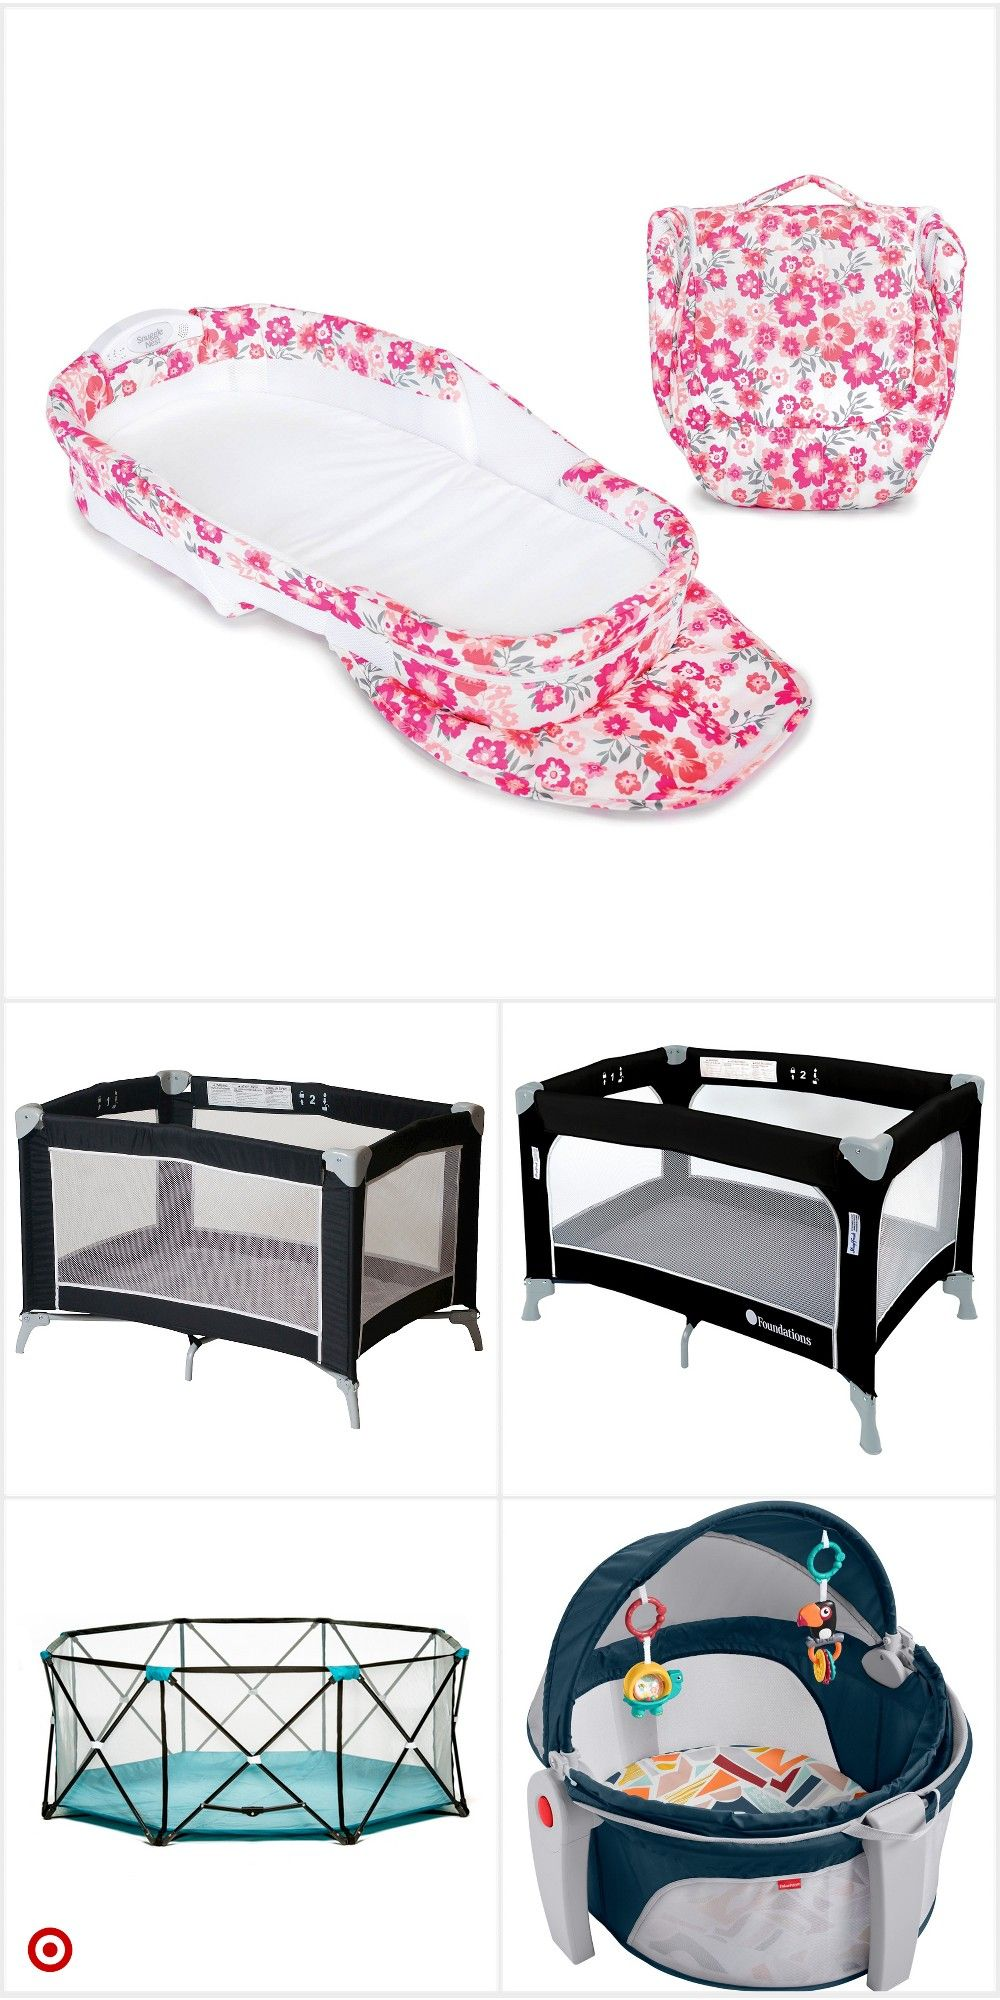 Shop Target for infant travel bed you will love at great